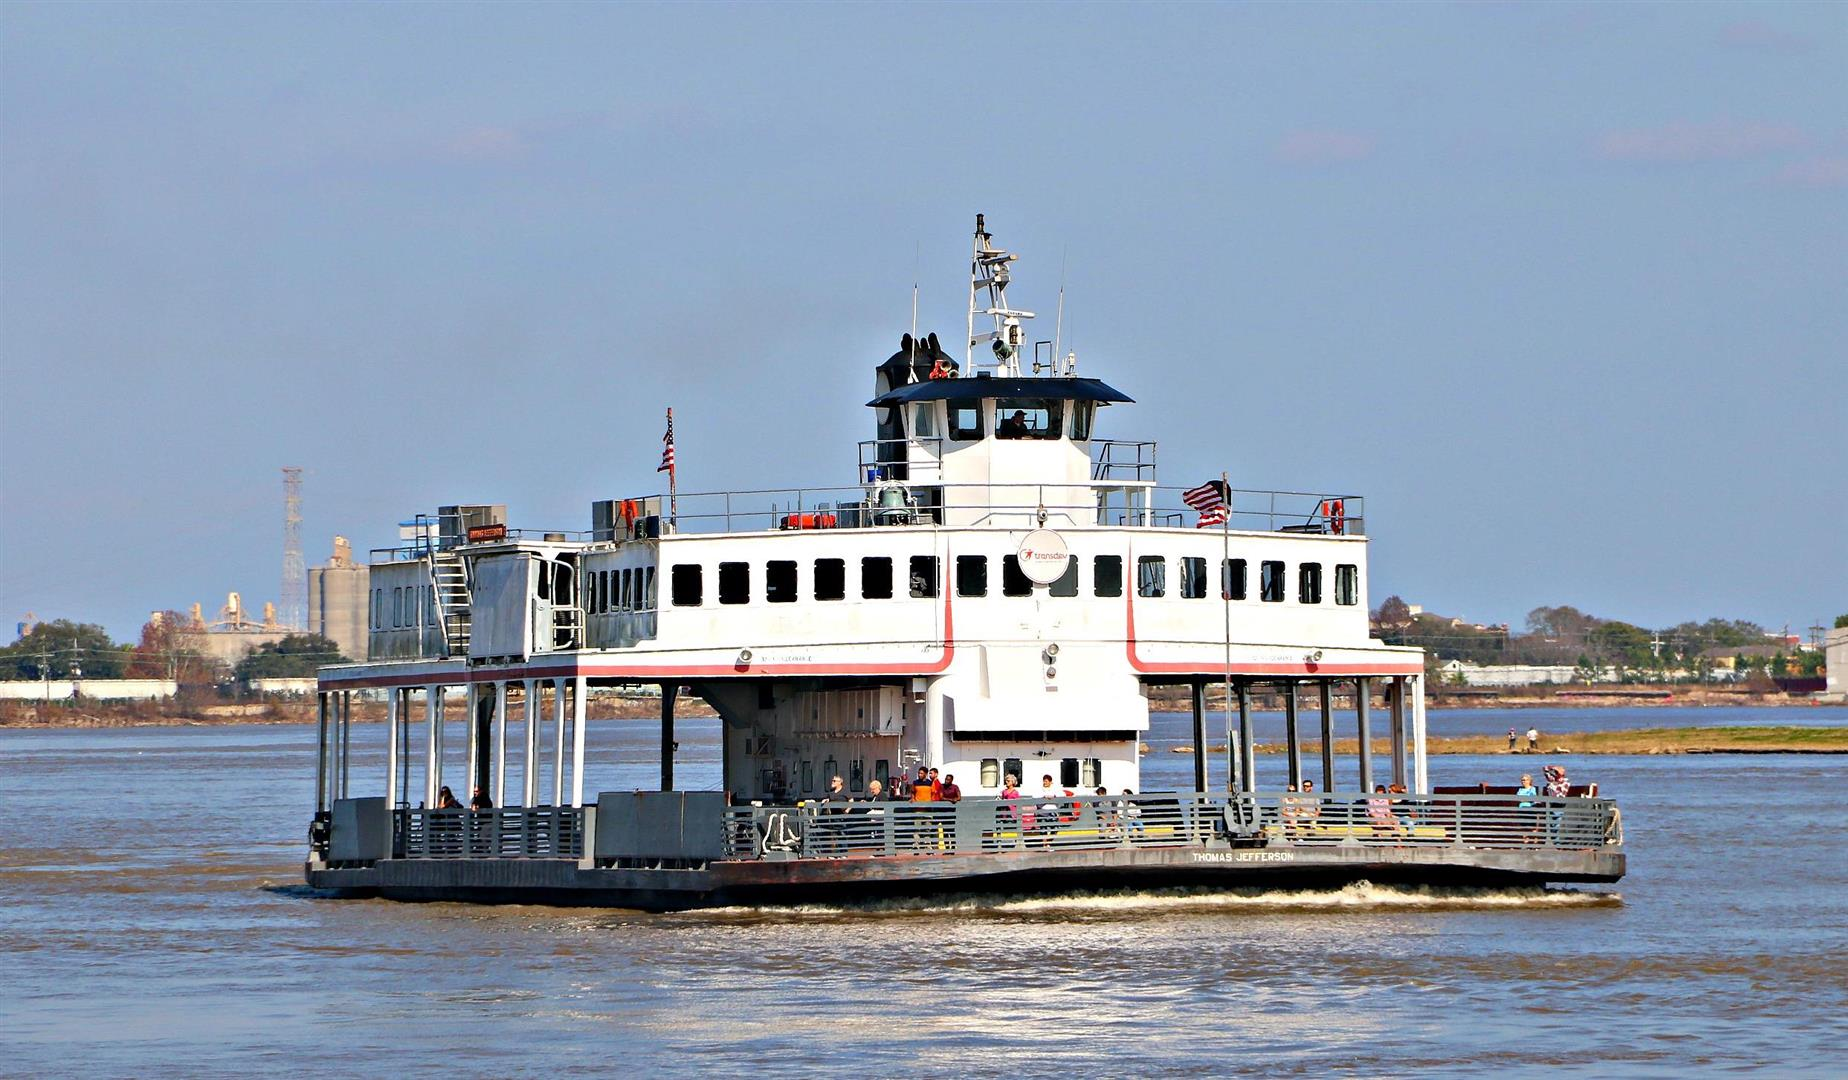 RiverPassengerFerry.jpg